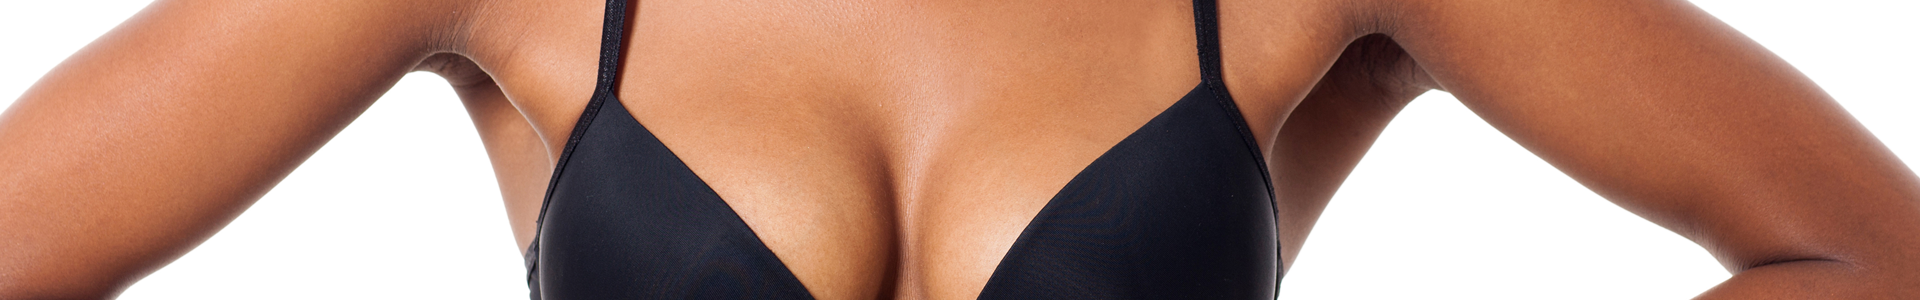 Gallery Breast without implant header